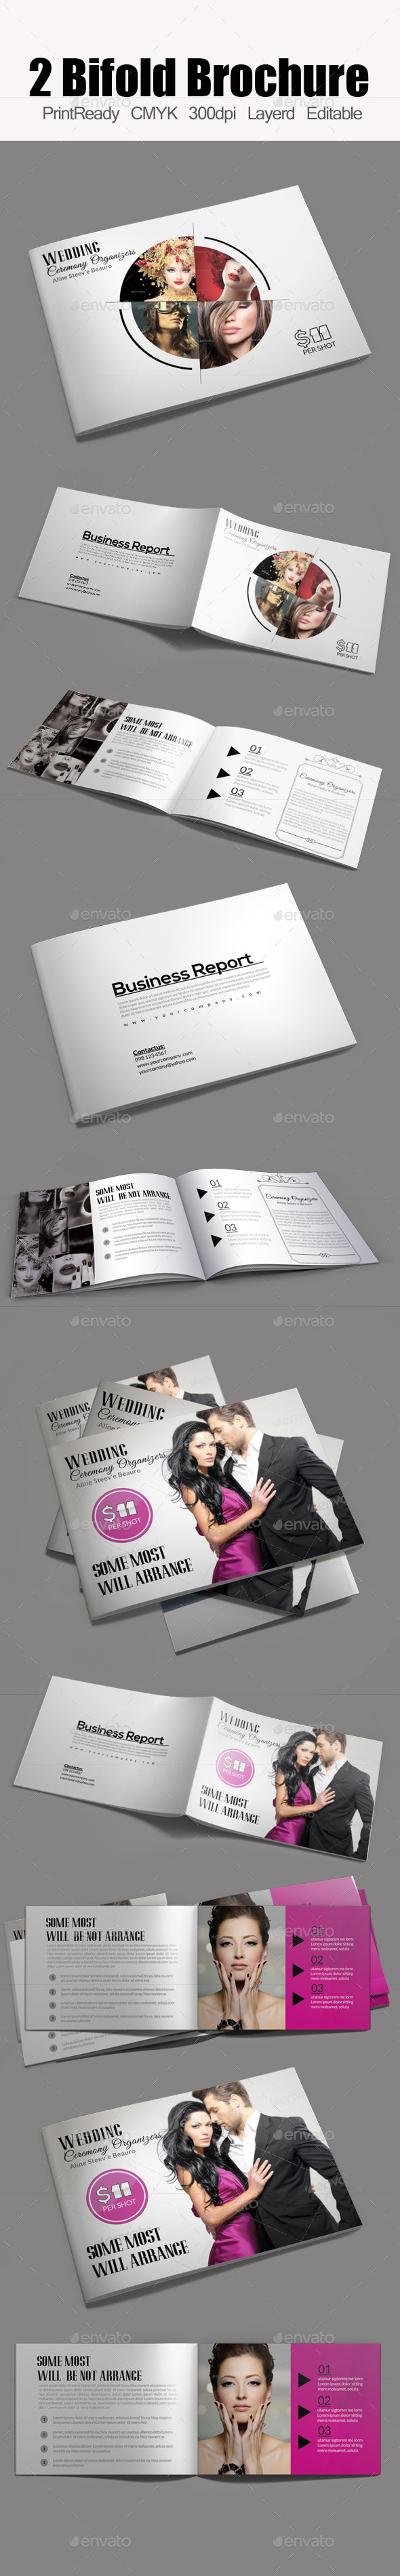 Bifold Brochure Template Bundle